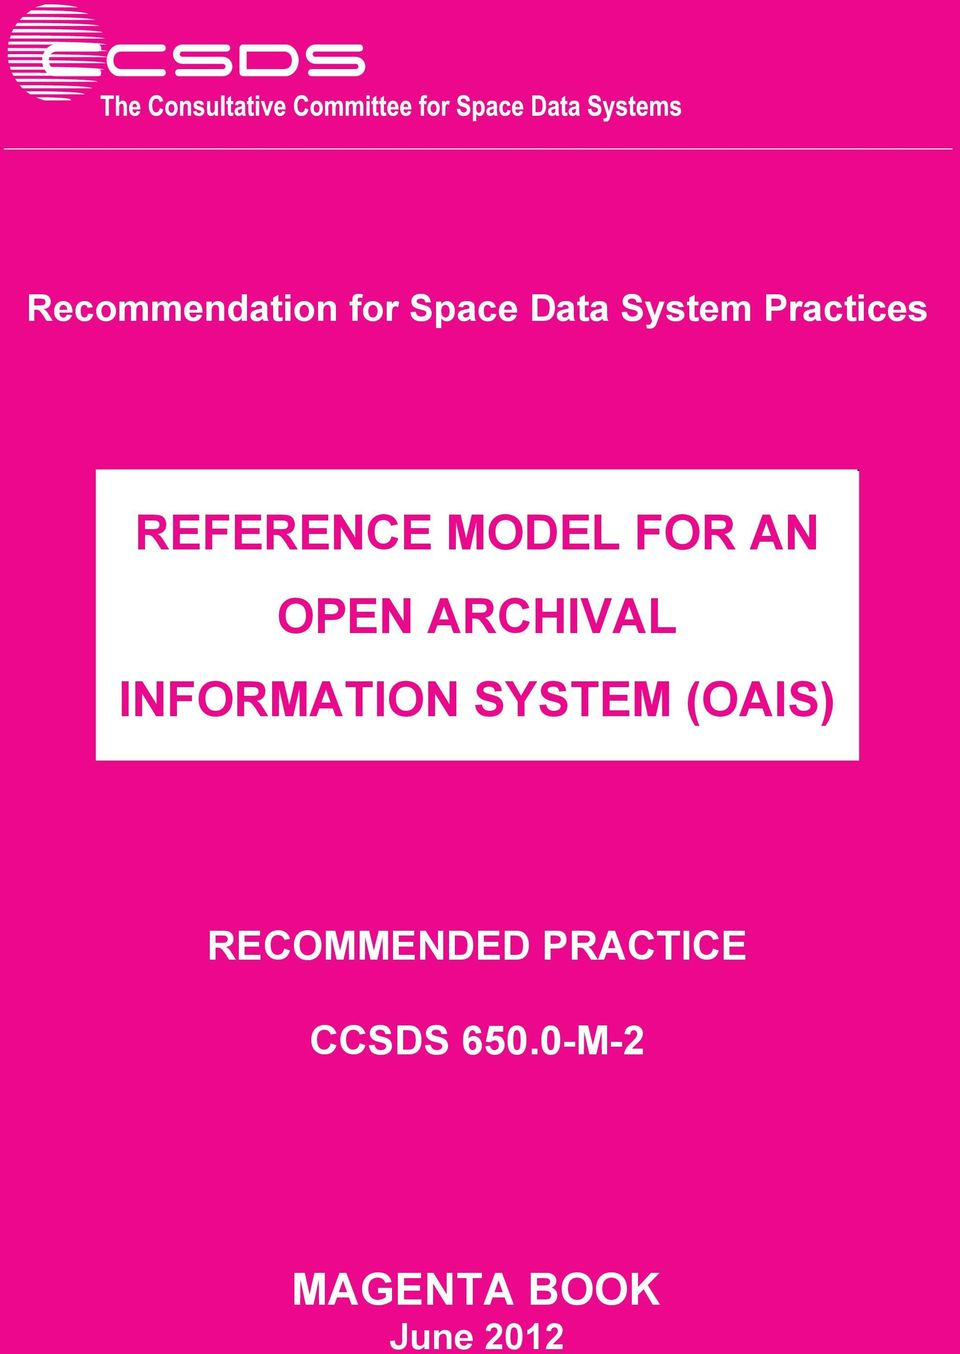 ARCHIVAL INFORMATION SYSTEM (OAIS)